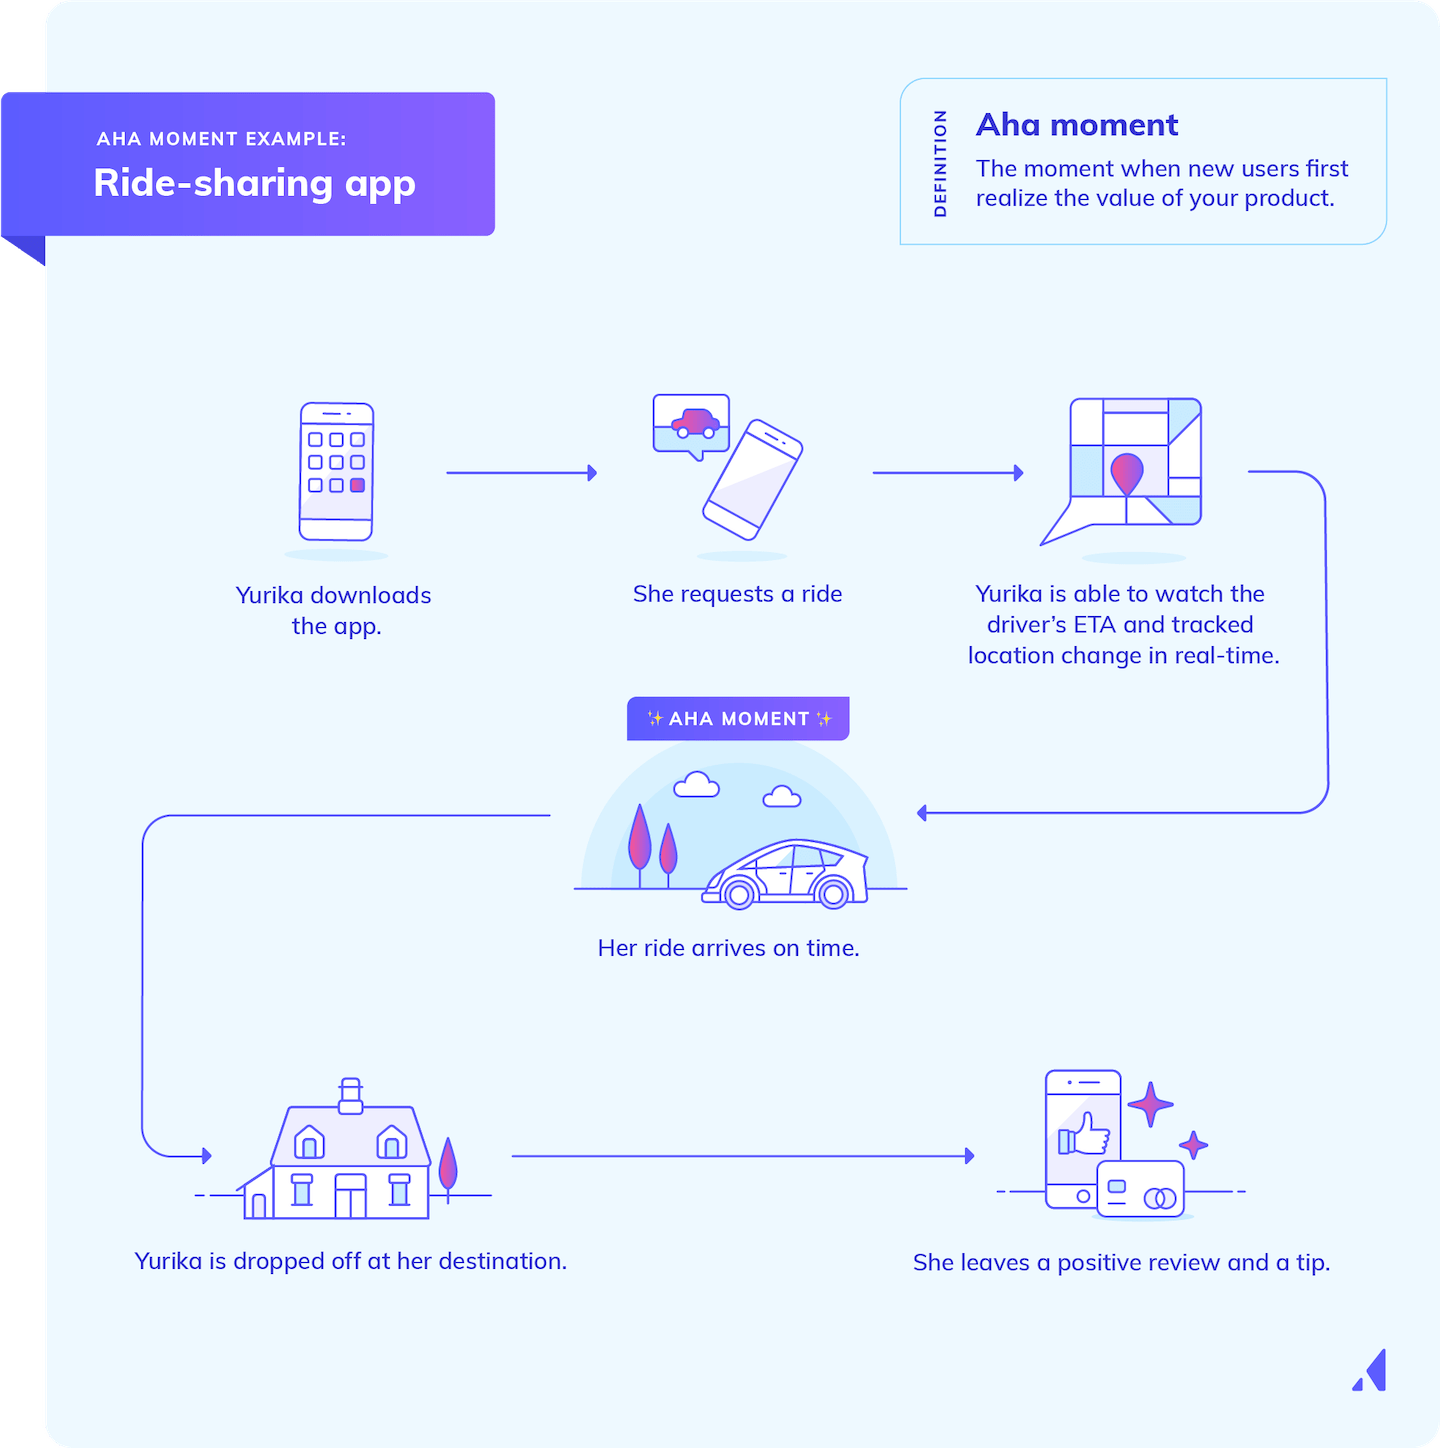 aha moment example infographic sample ride share user journey